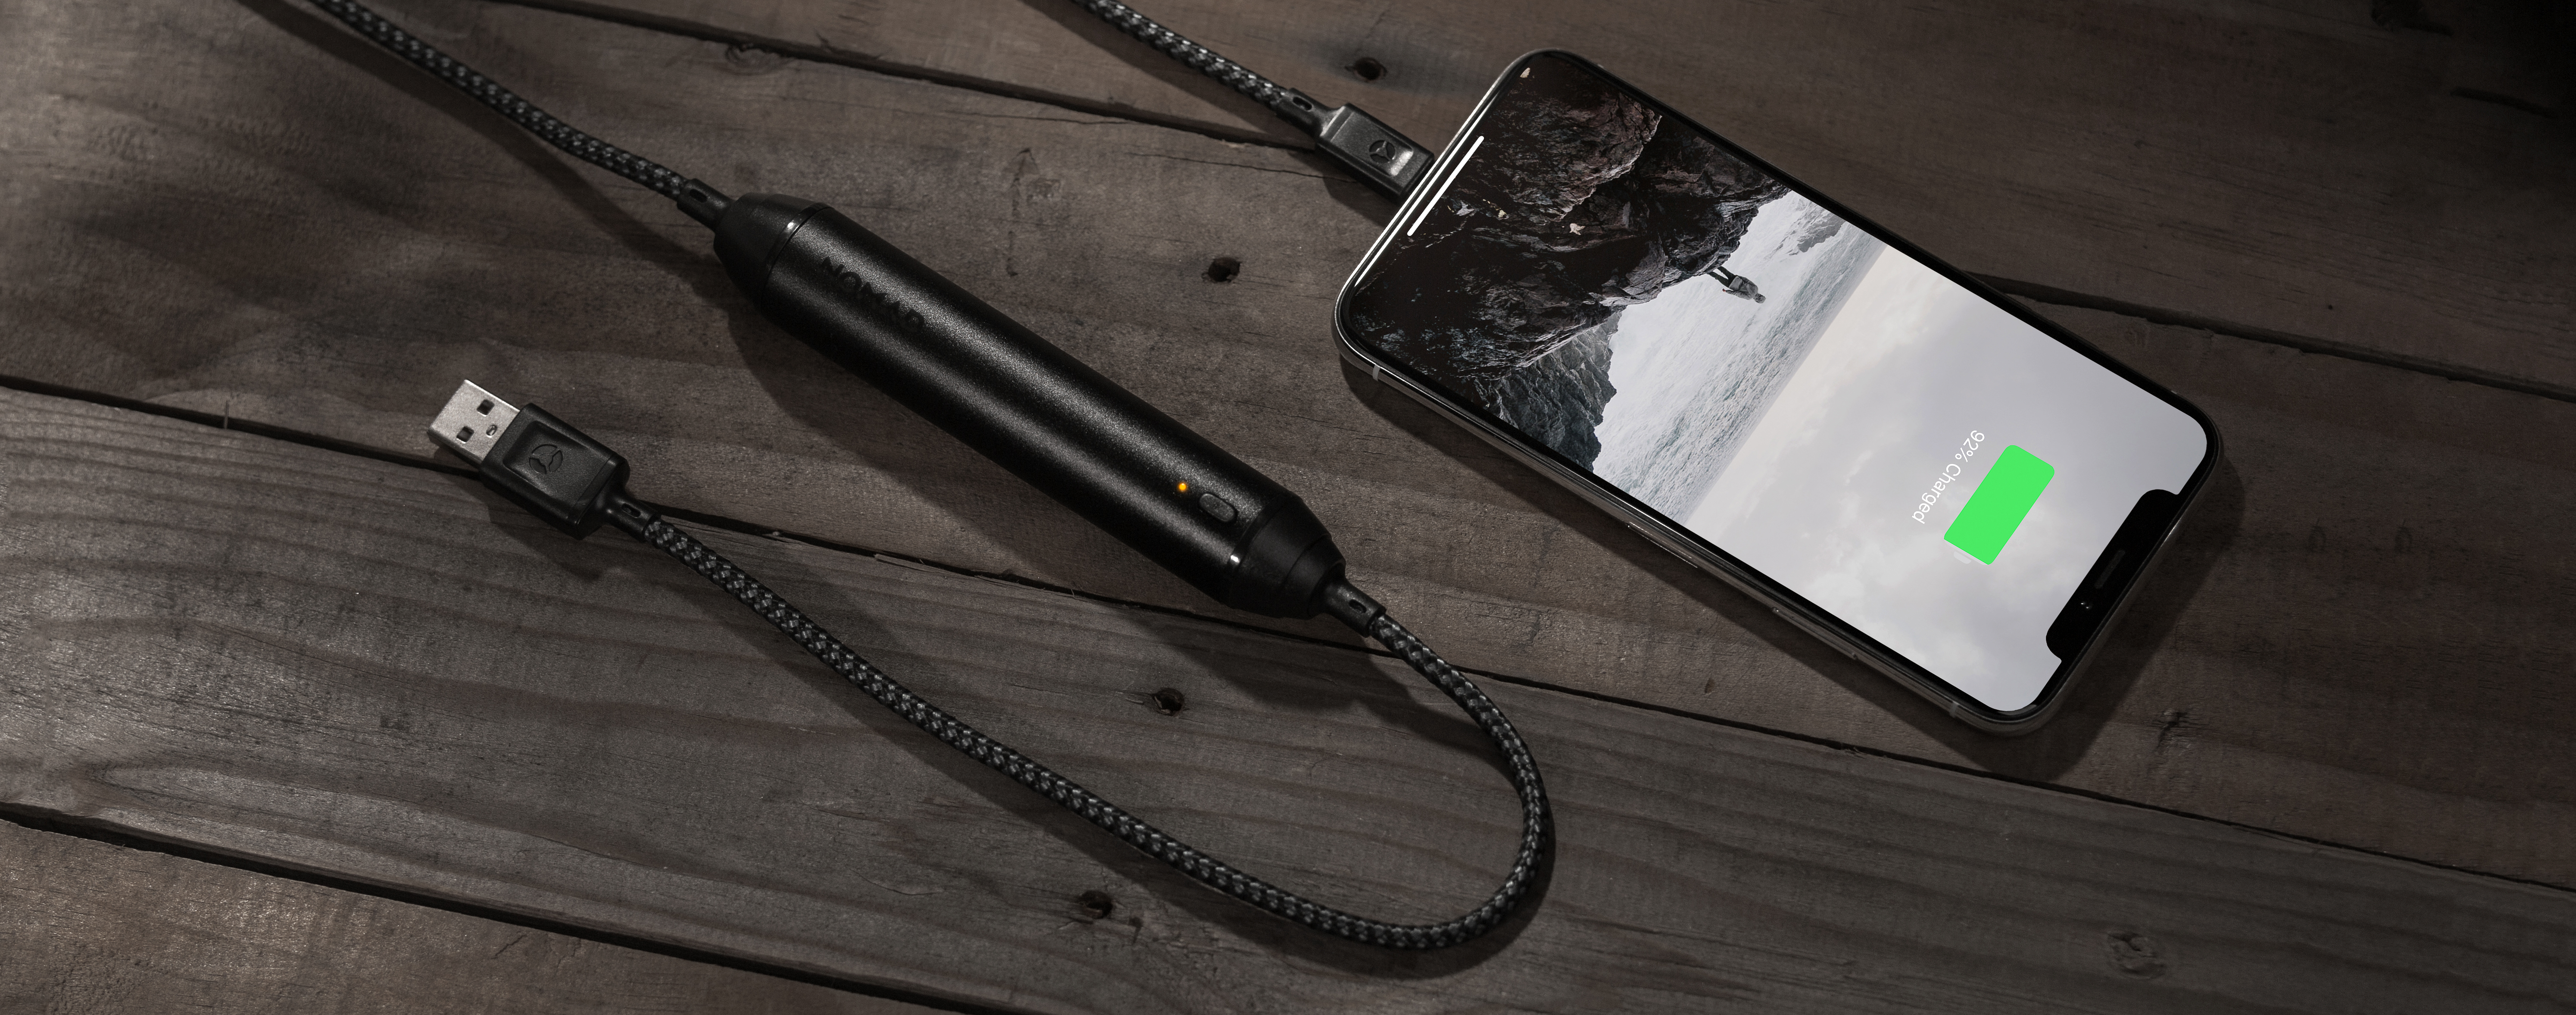 Nomad Announces Improved 2,800mAh Battery Cable for iPhone